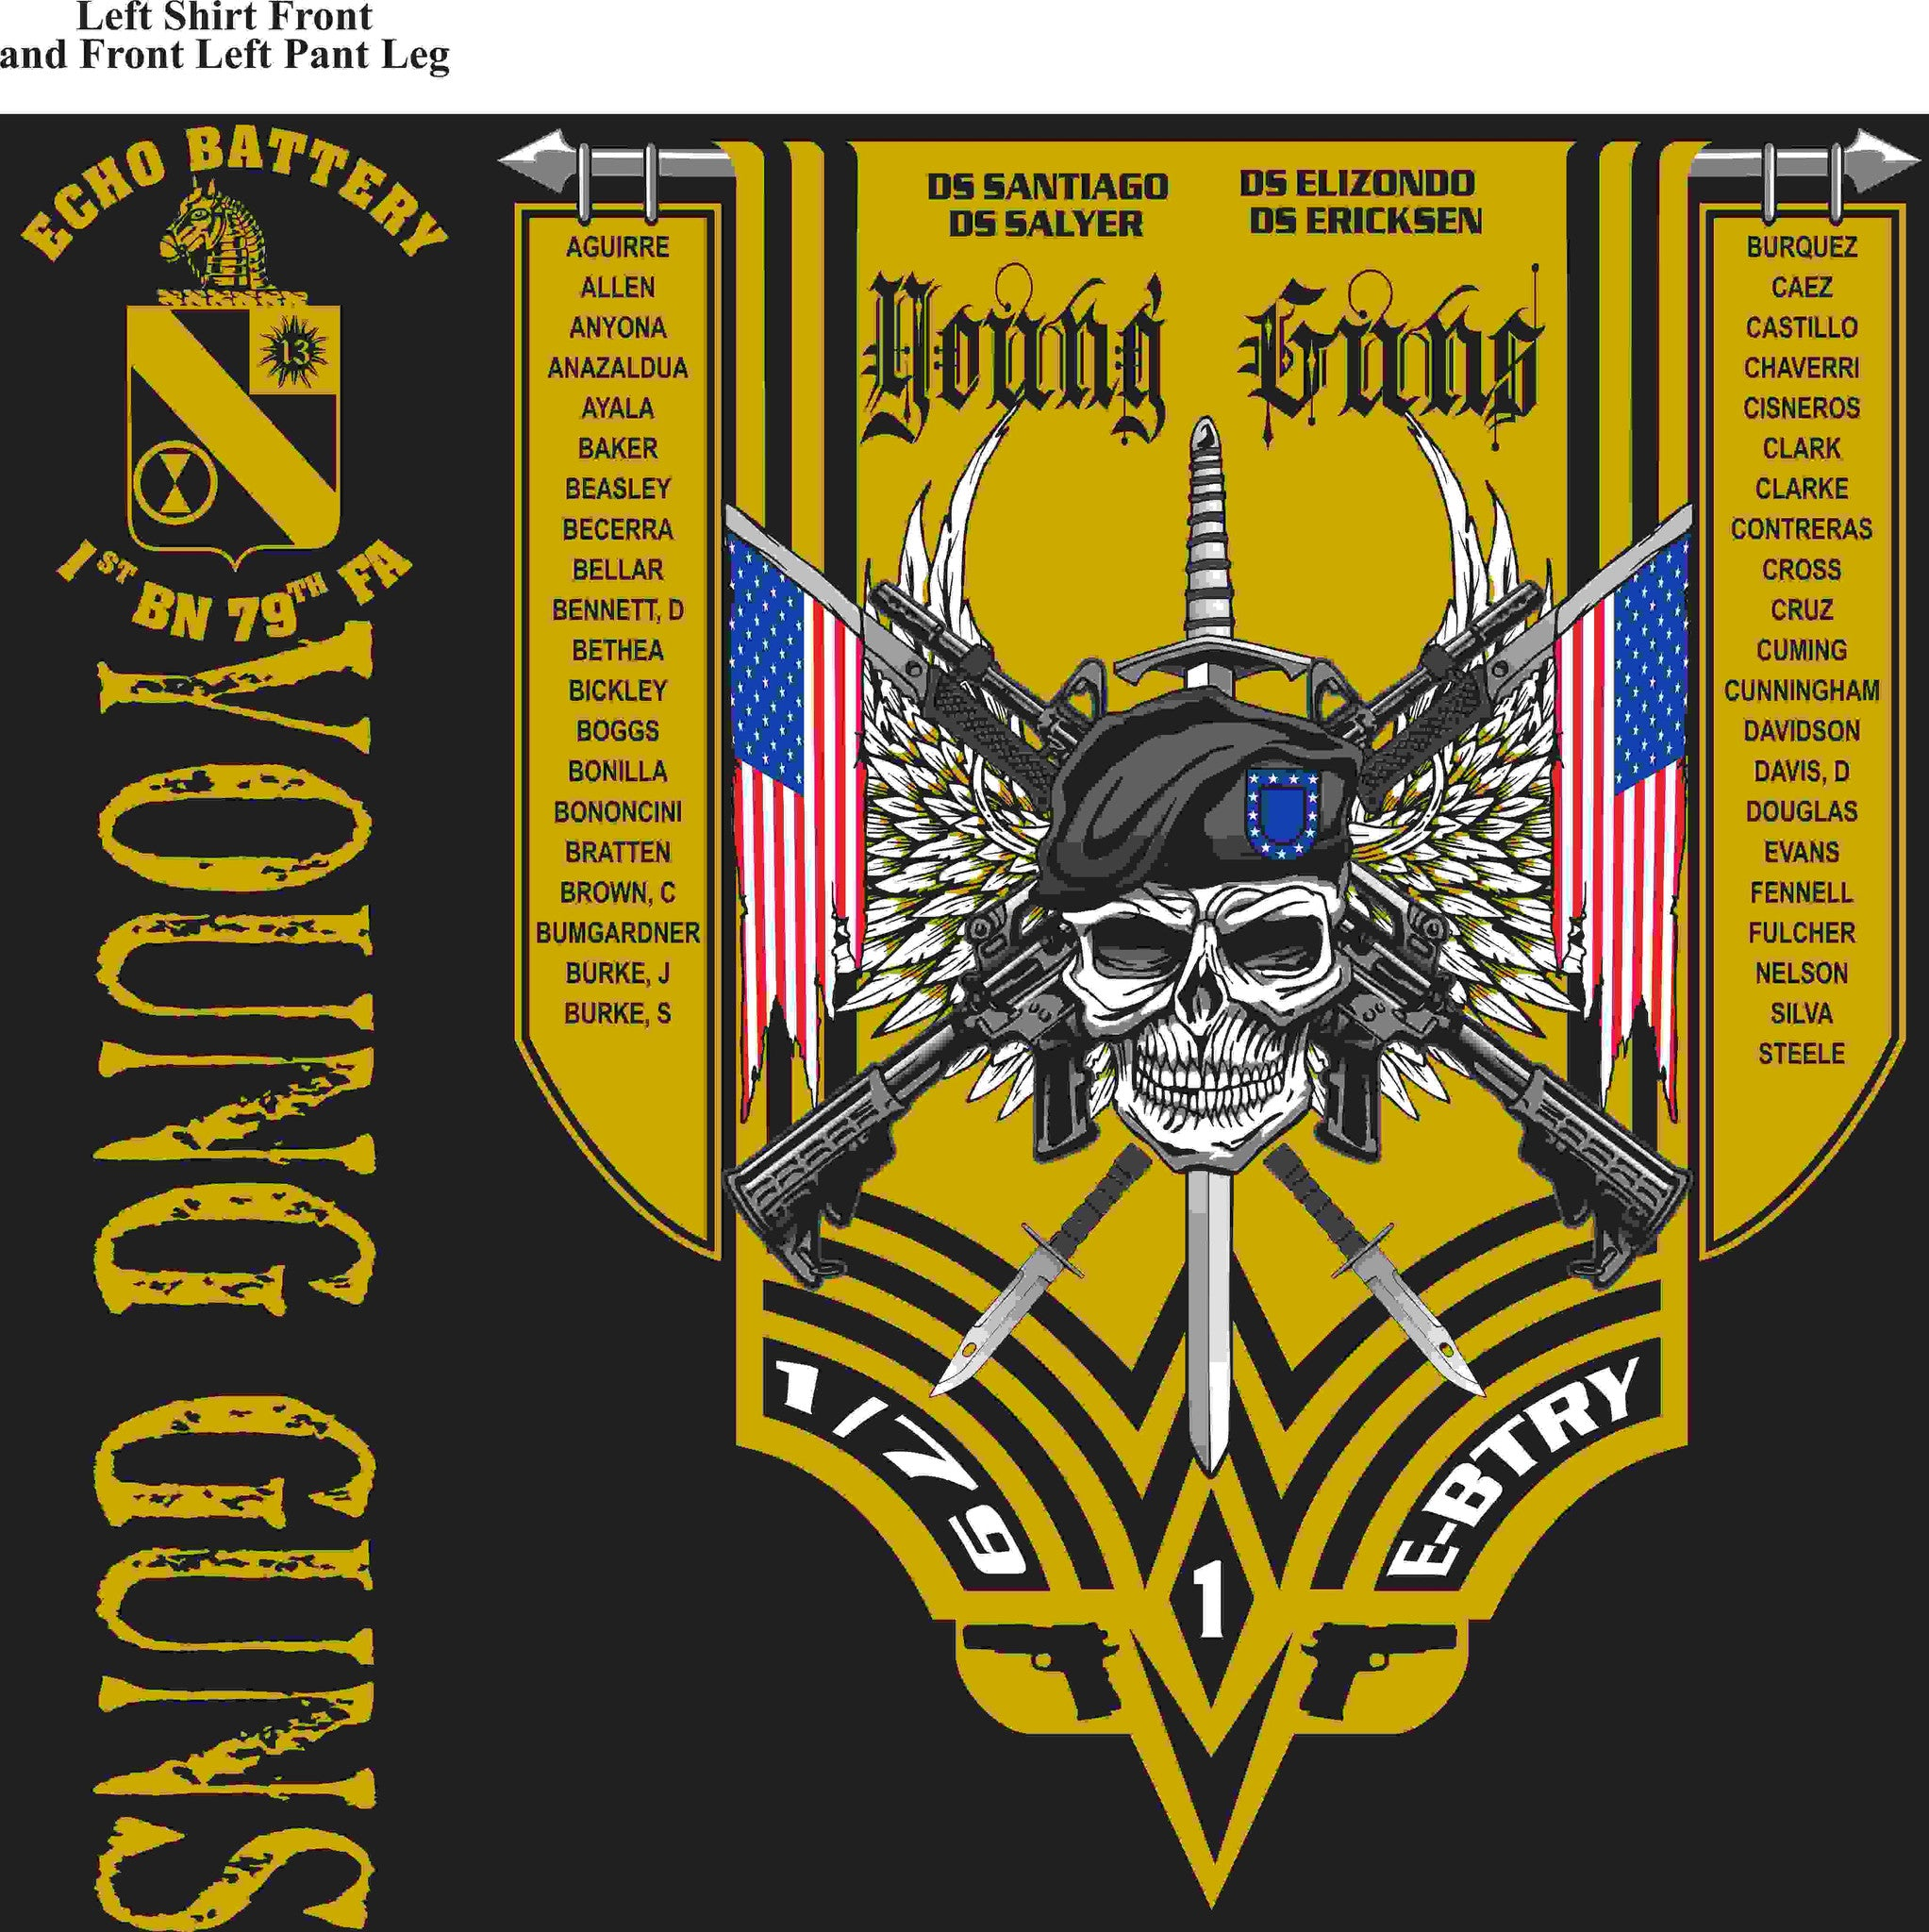 PLATOON SHIRTS (digital) ECHO 1st 79th YOUNG GUNS FEB 2016